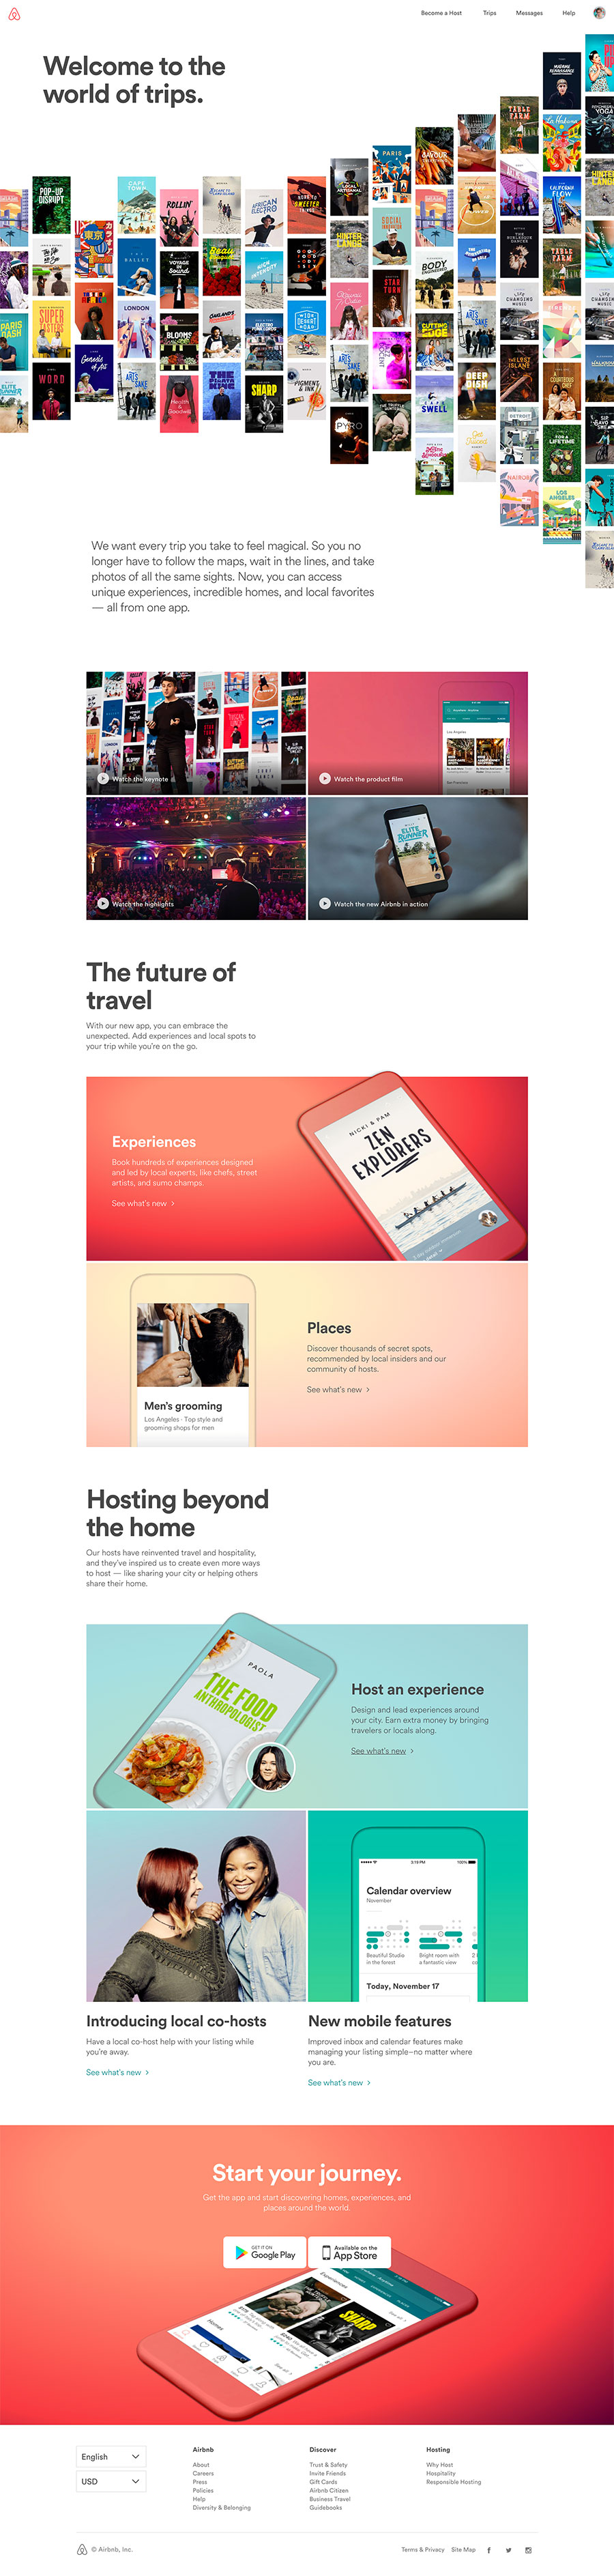 Experience Airbnb 2016 Web Design Web Design Projects Best Landing Page Design